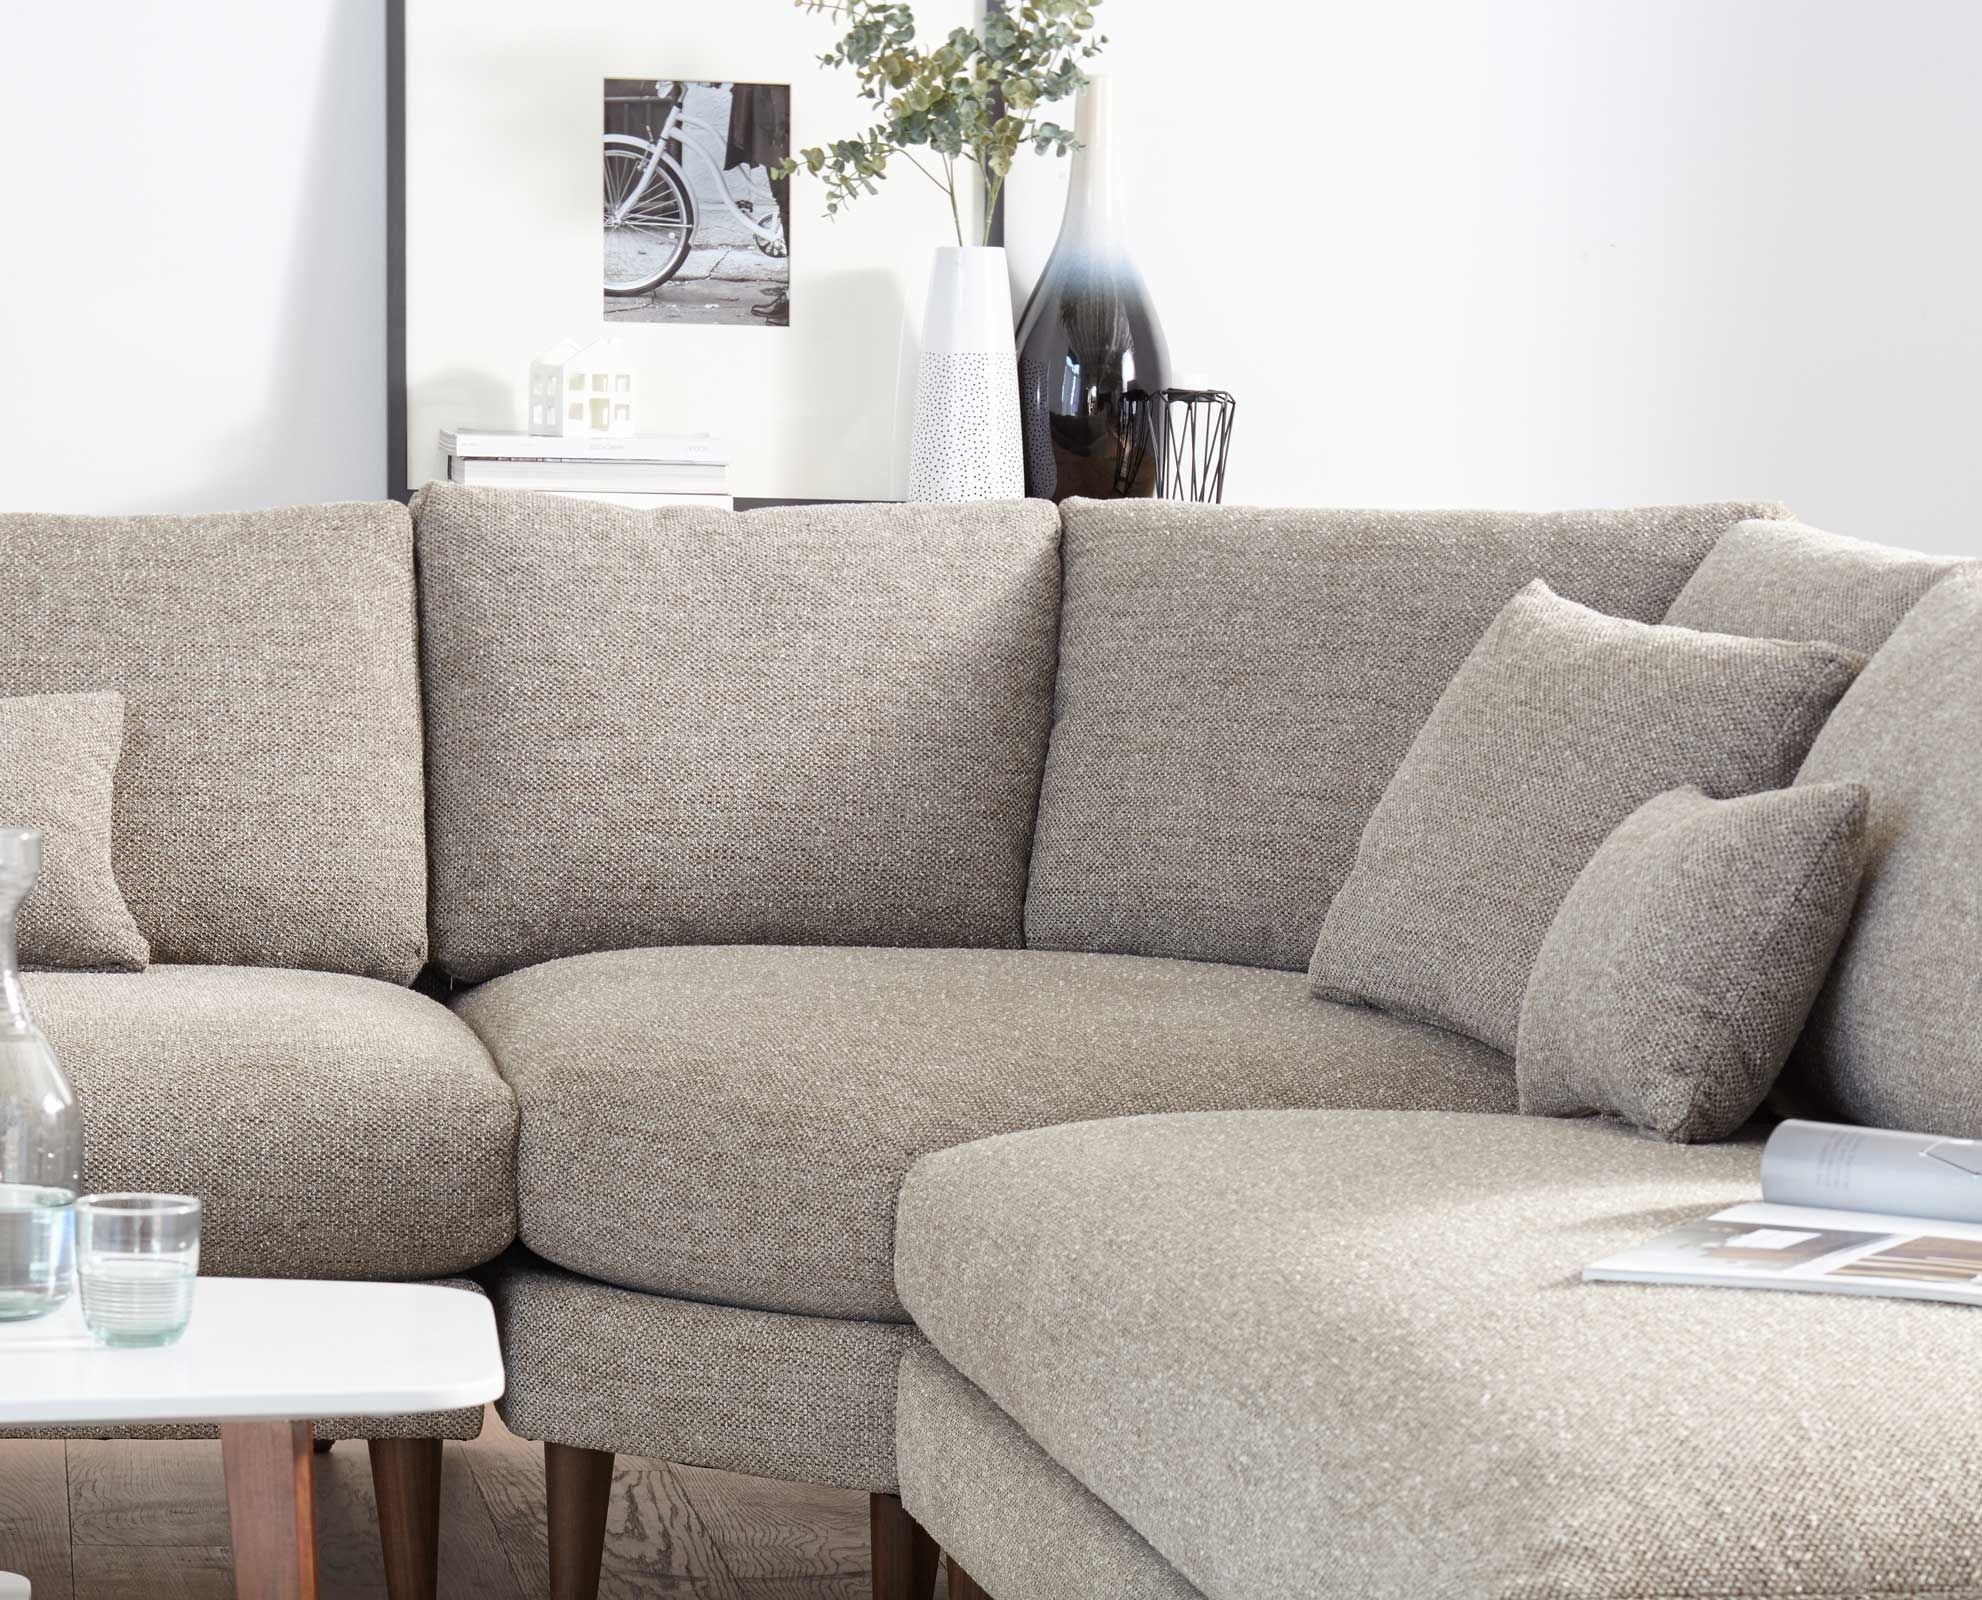 The Grand Hugo Sectional From Scandinavian Designs Is A Great Value And A Unique Living Room Furniture Contemporary Living Room Sectional Small Sectional Sofa